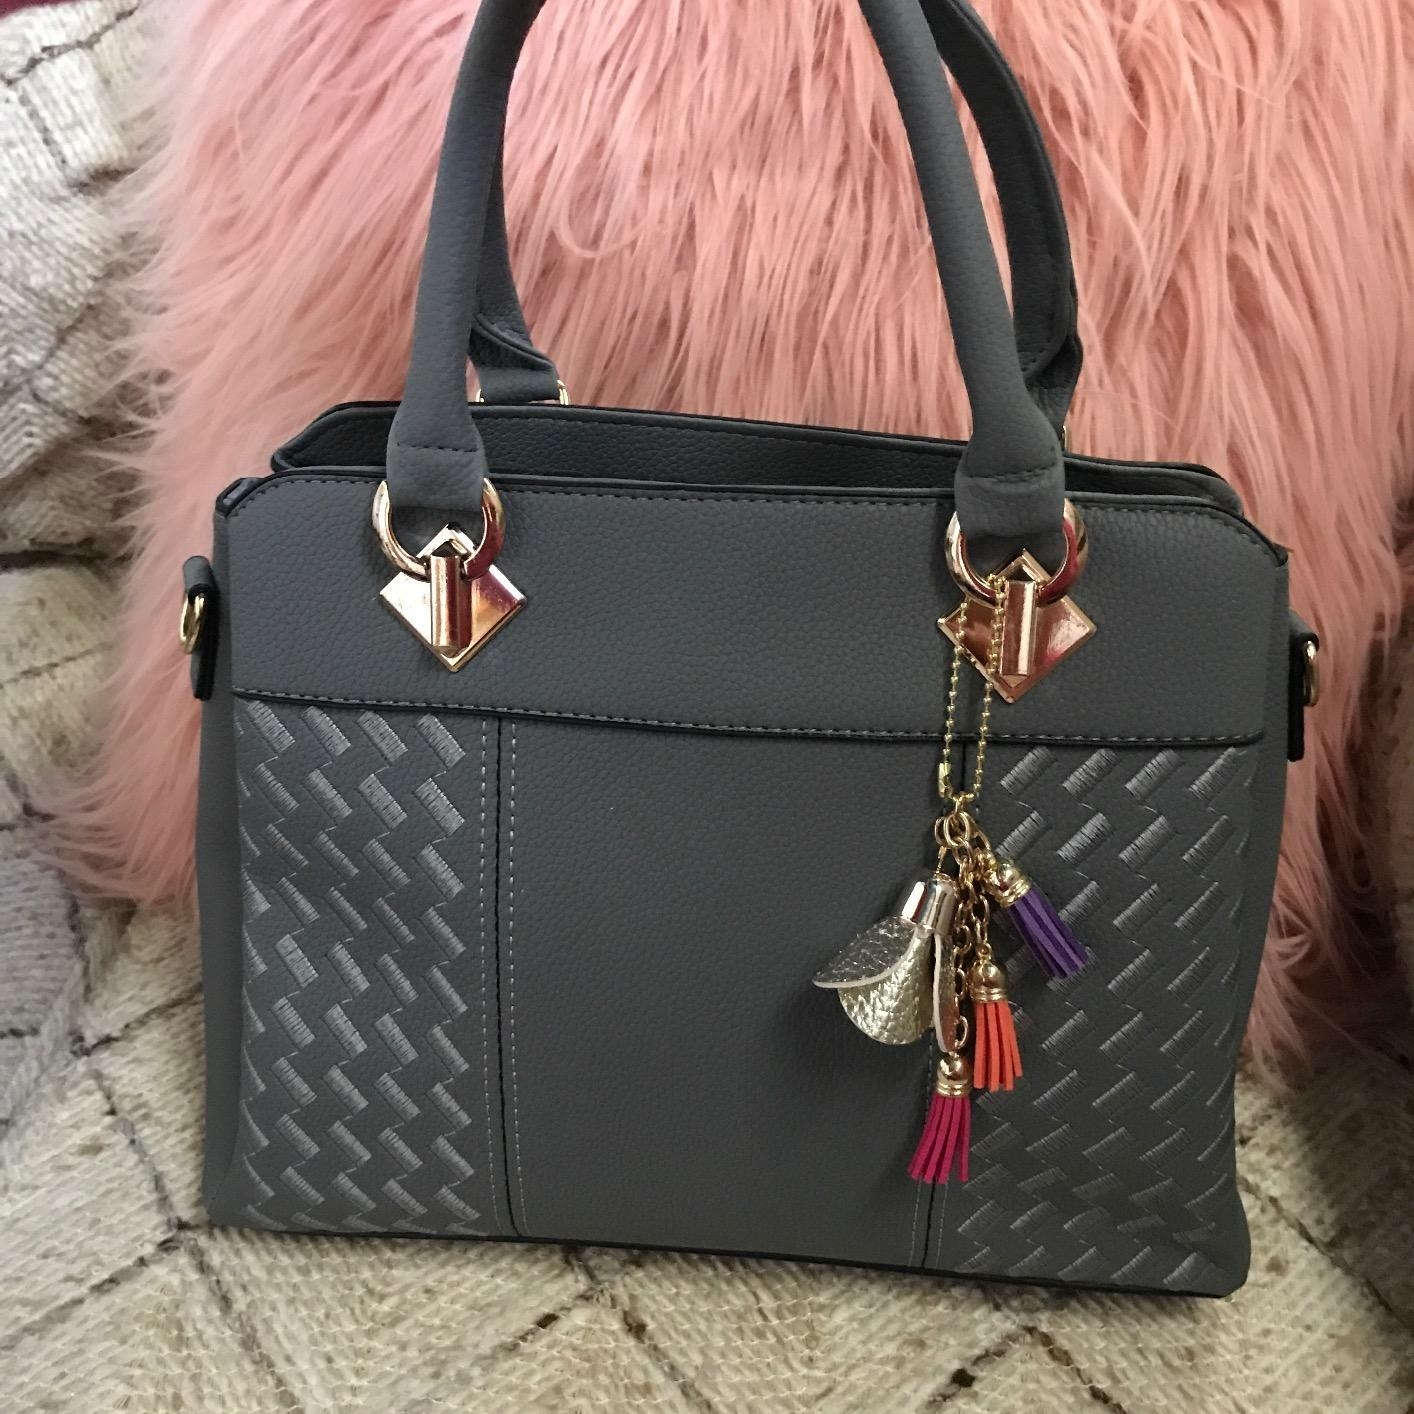 cdad479f694f8 30 Handbags That Look More Expensive Than They Are